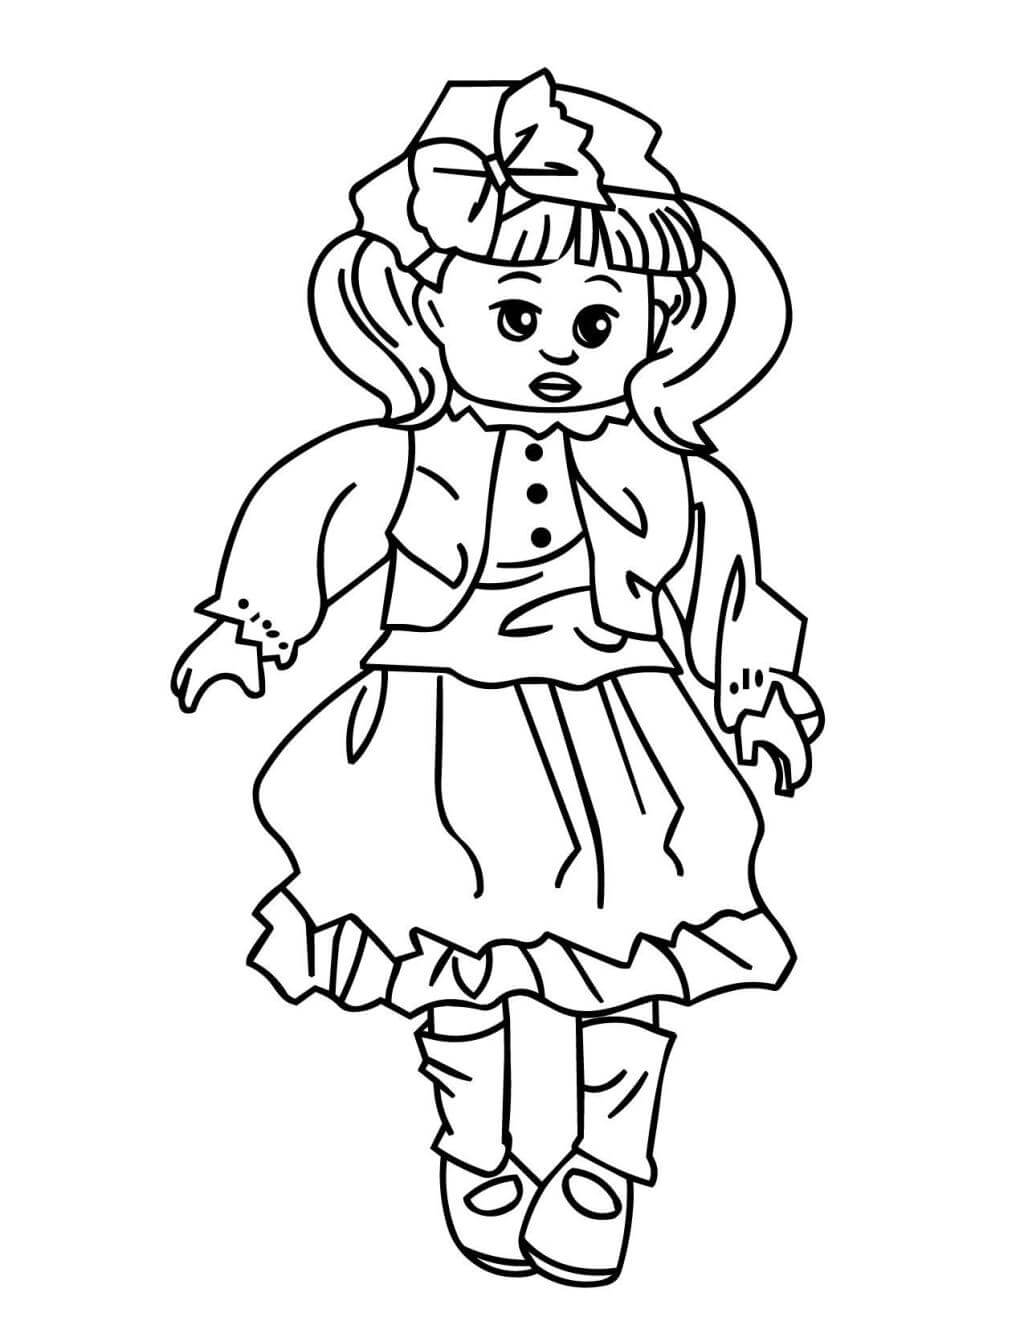 pictures of american girl dolls to color american girl doll coloring pages with images kolorowanki girl pictures dolls american of color to